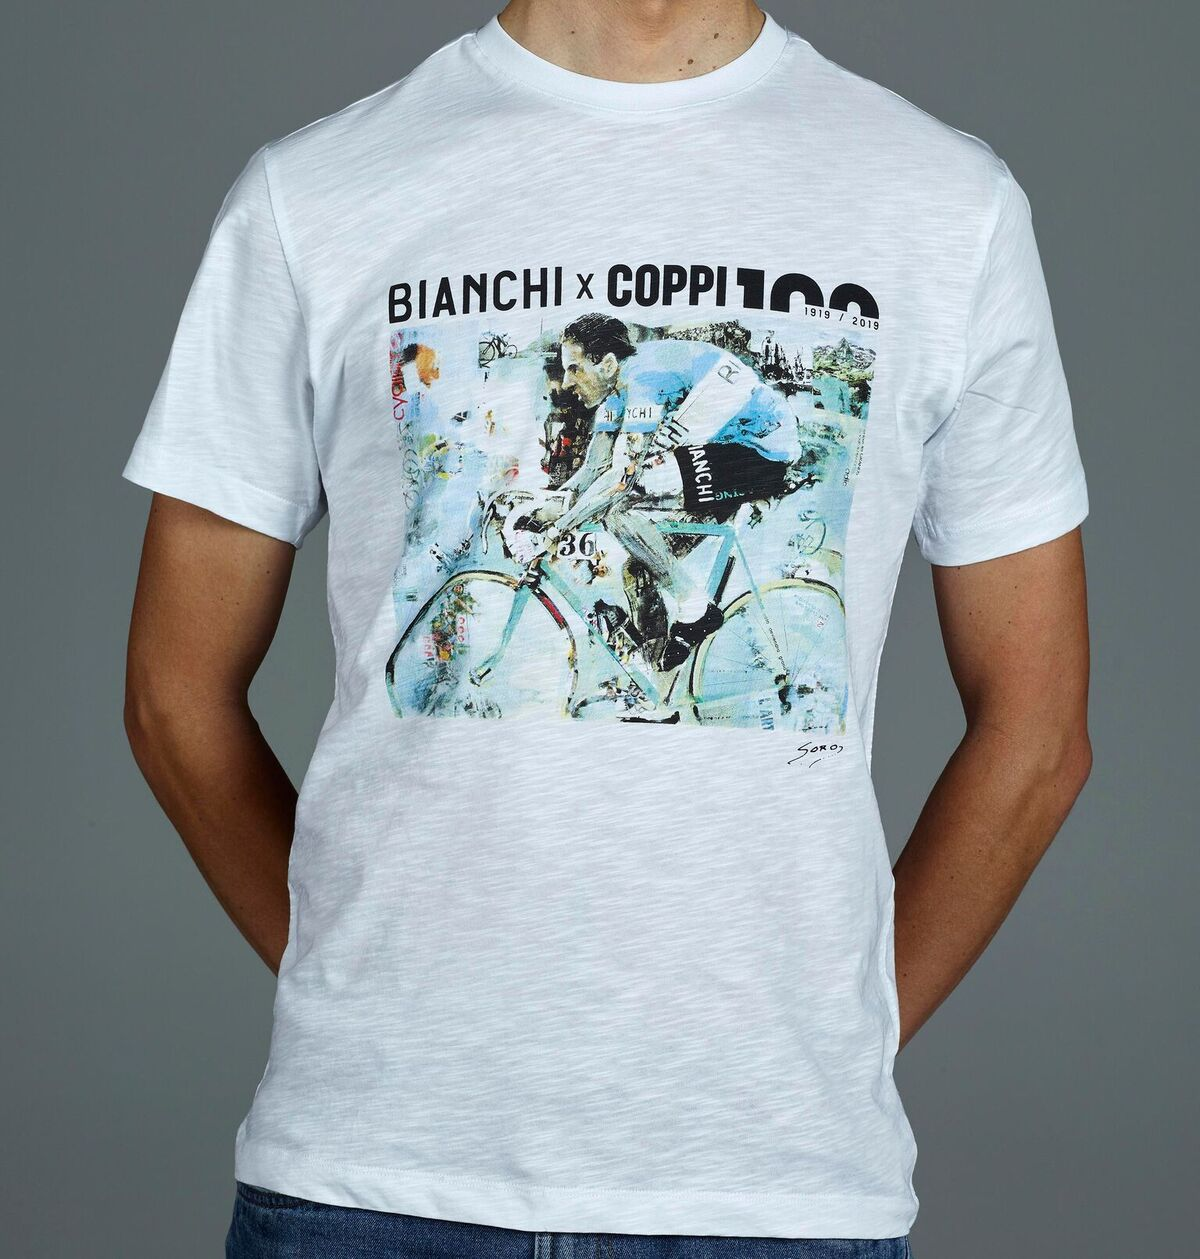 Bianchi Coppi 100 T Shirt Limited Edition Ciclobottega Bikeshop